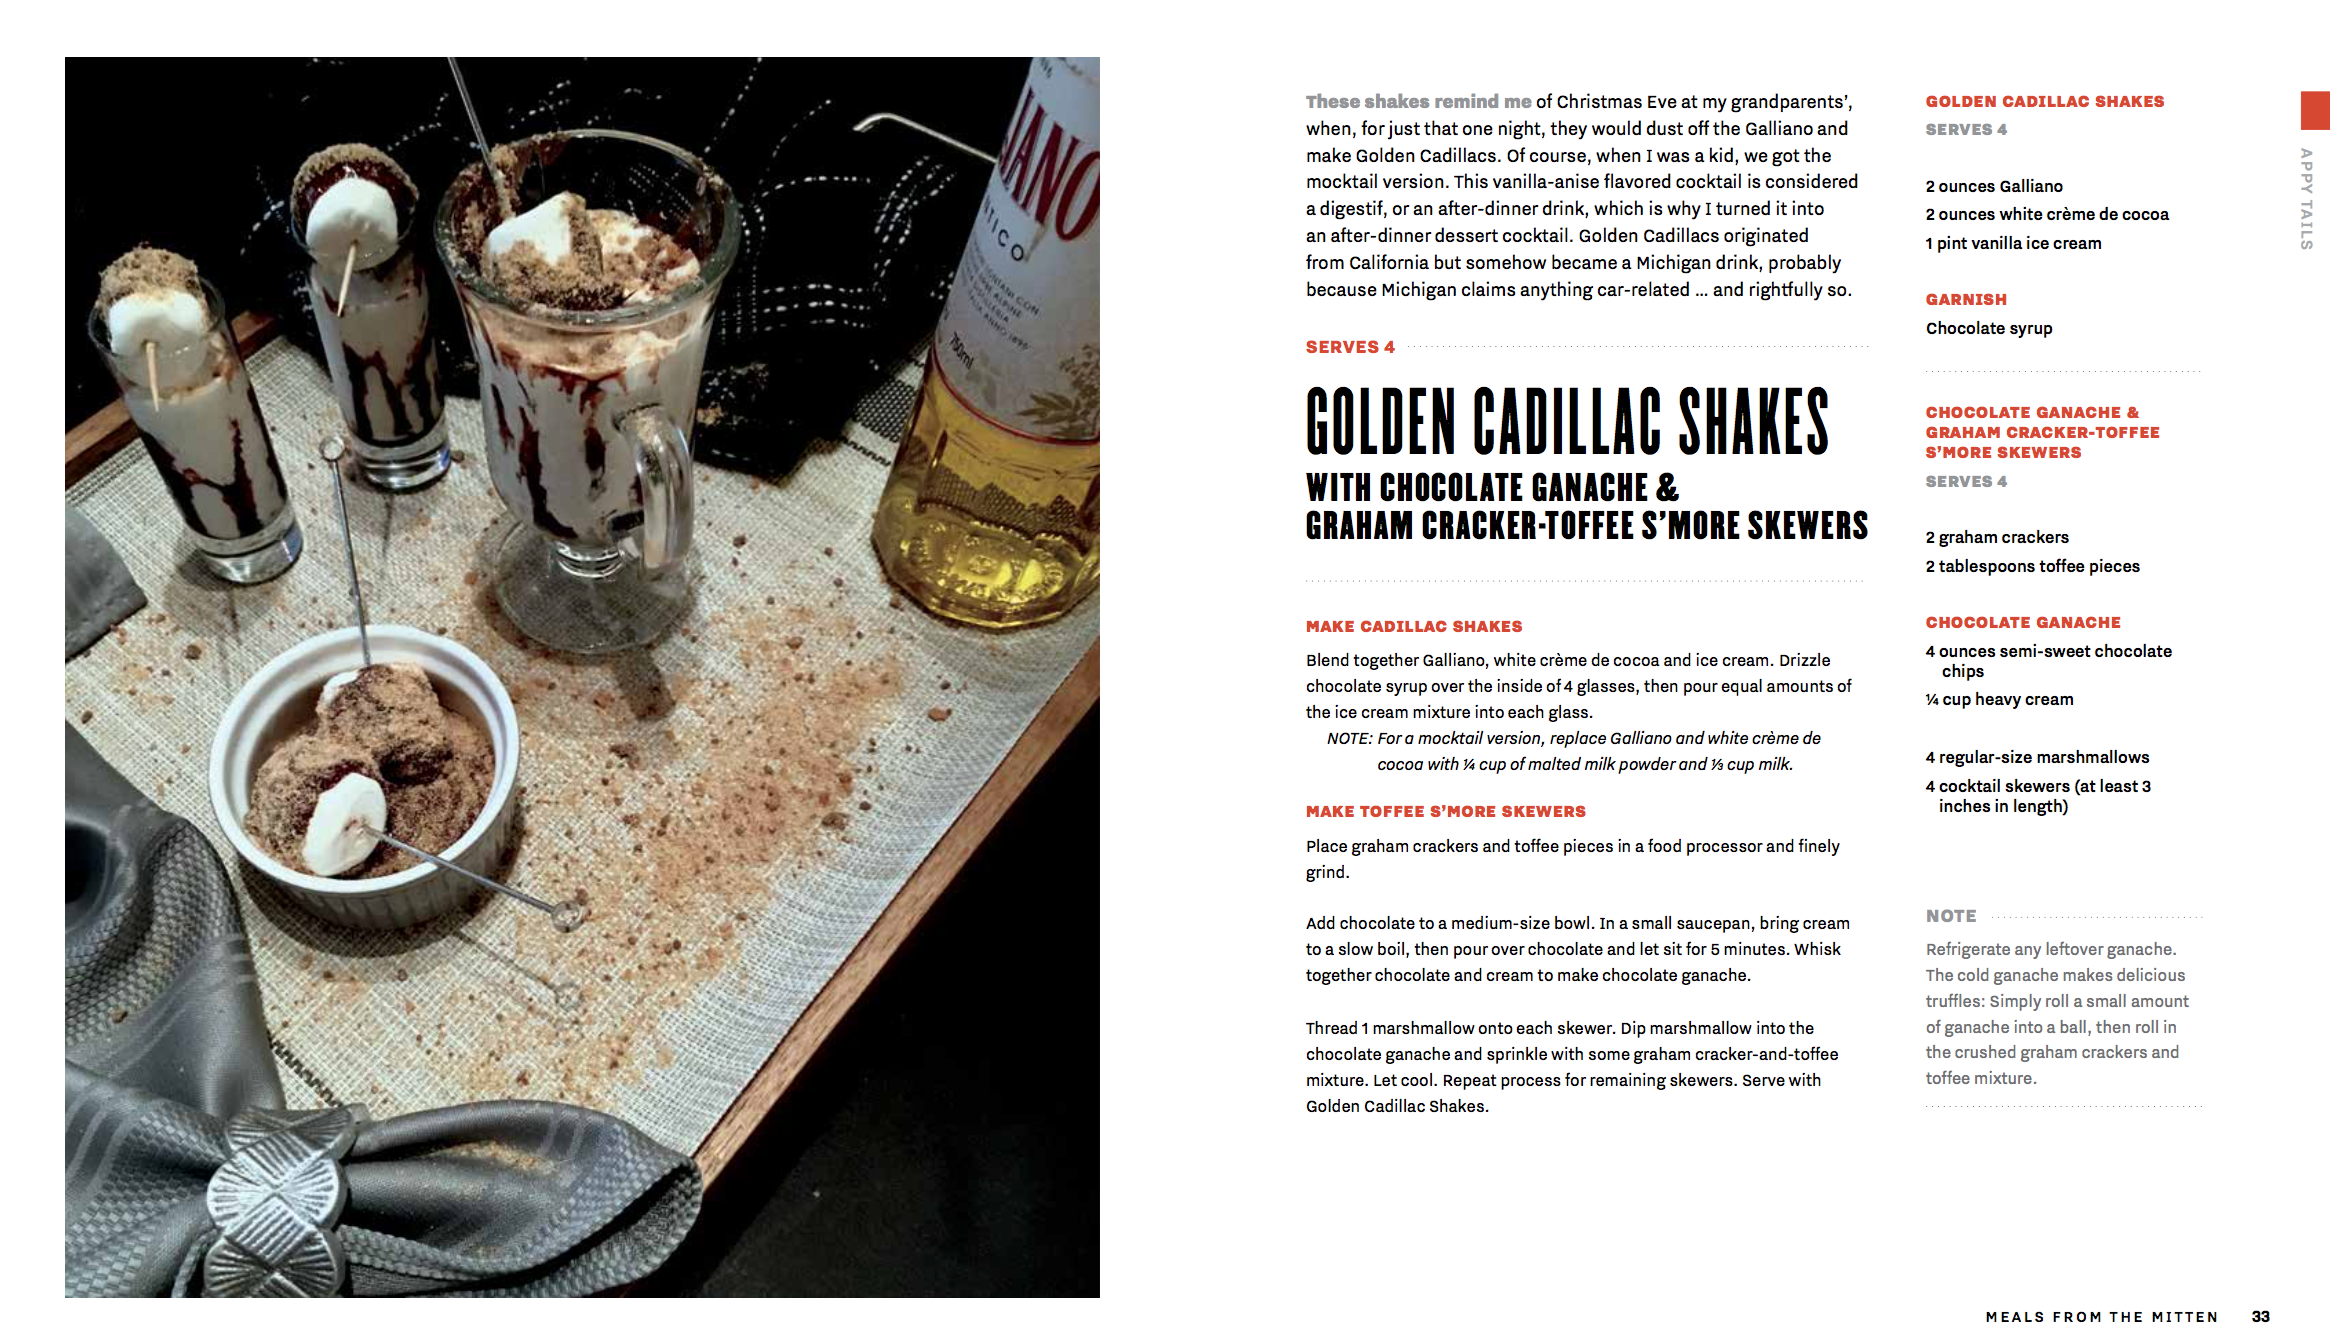 Golden Cadillac Shakes Recipe Card